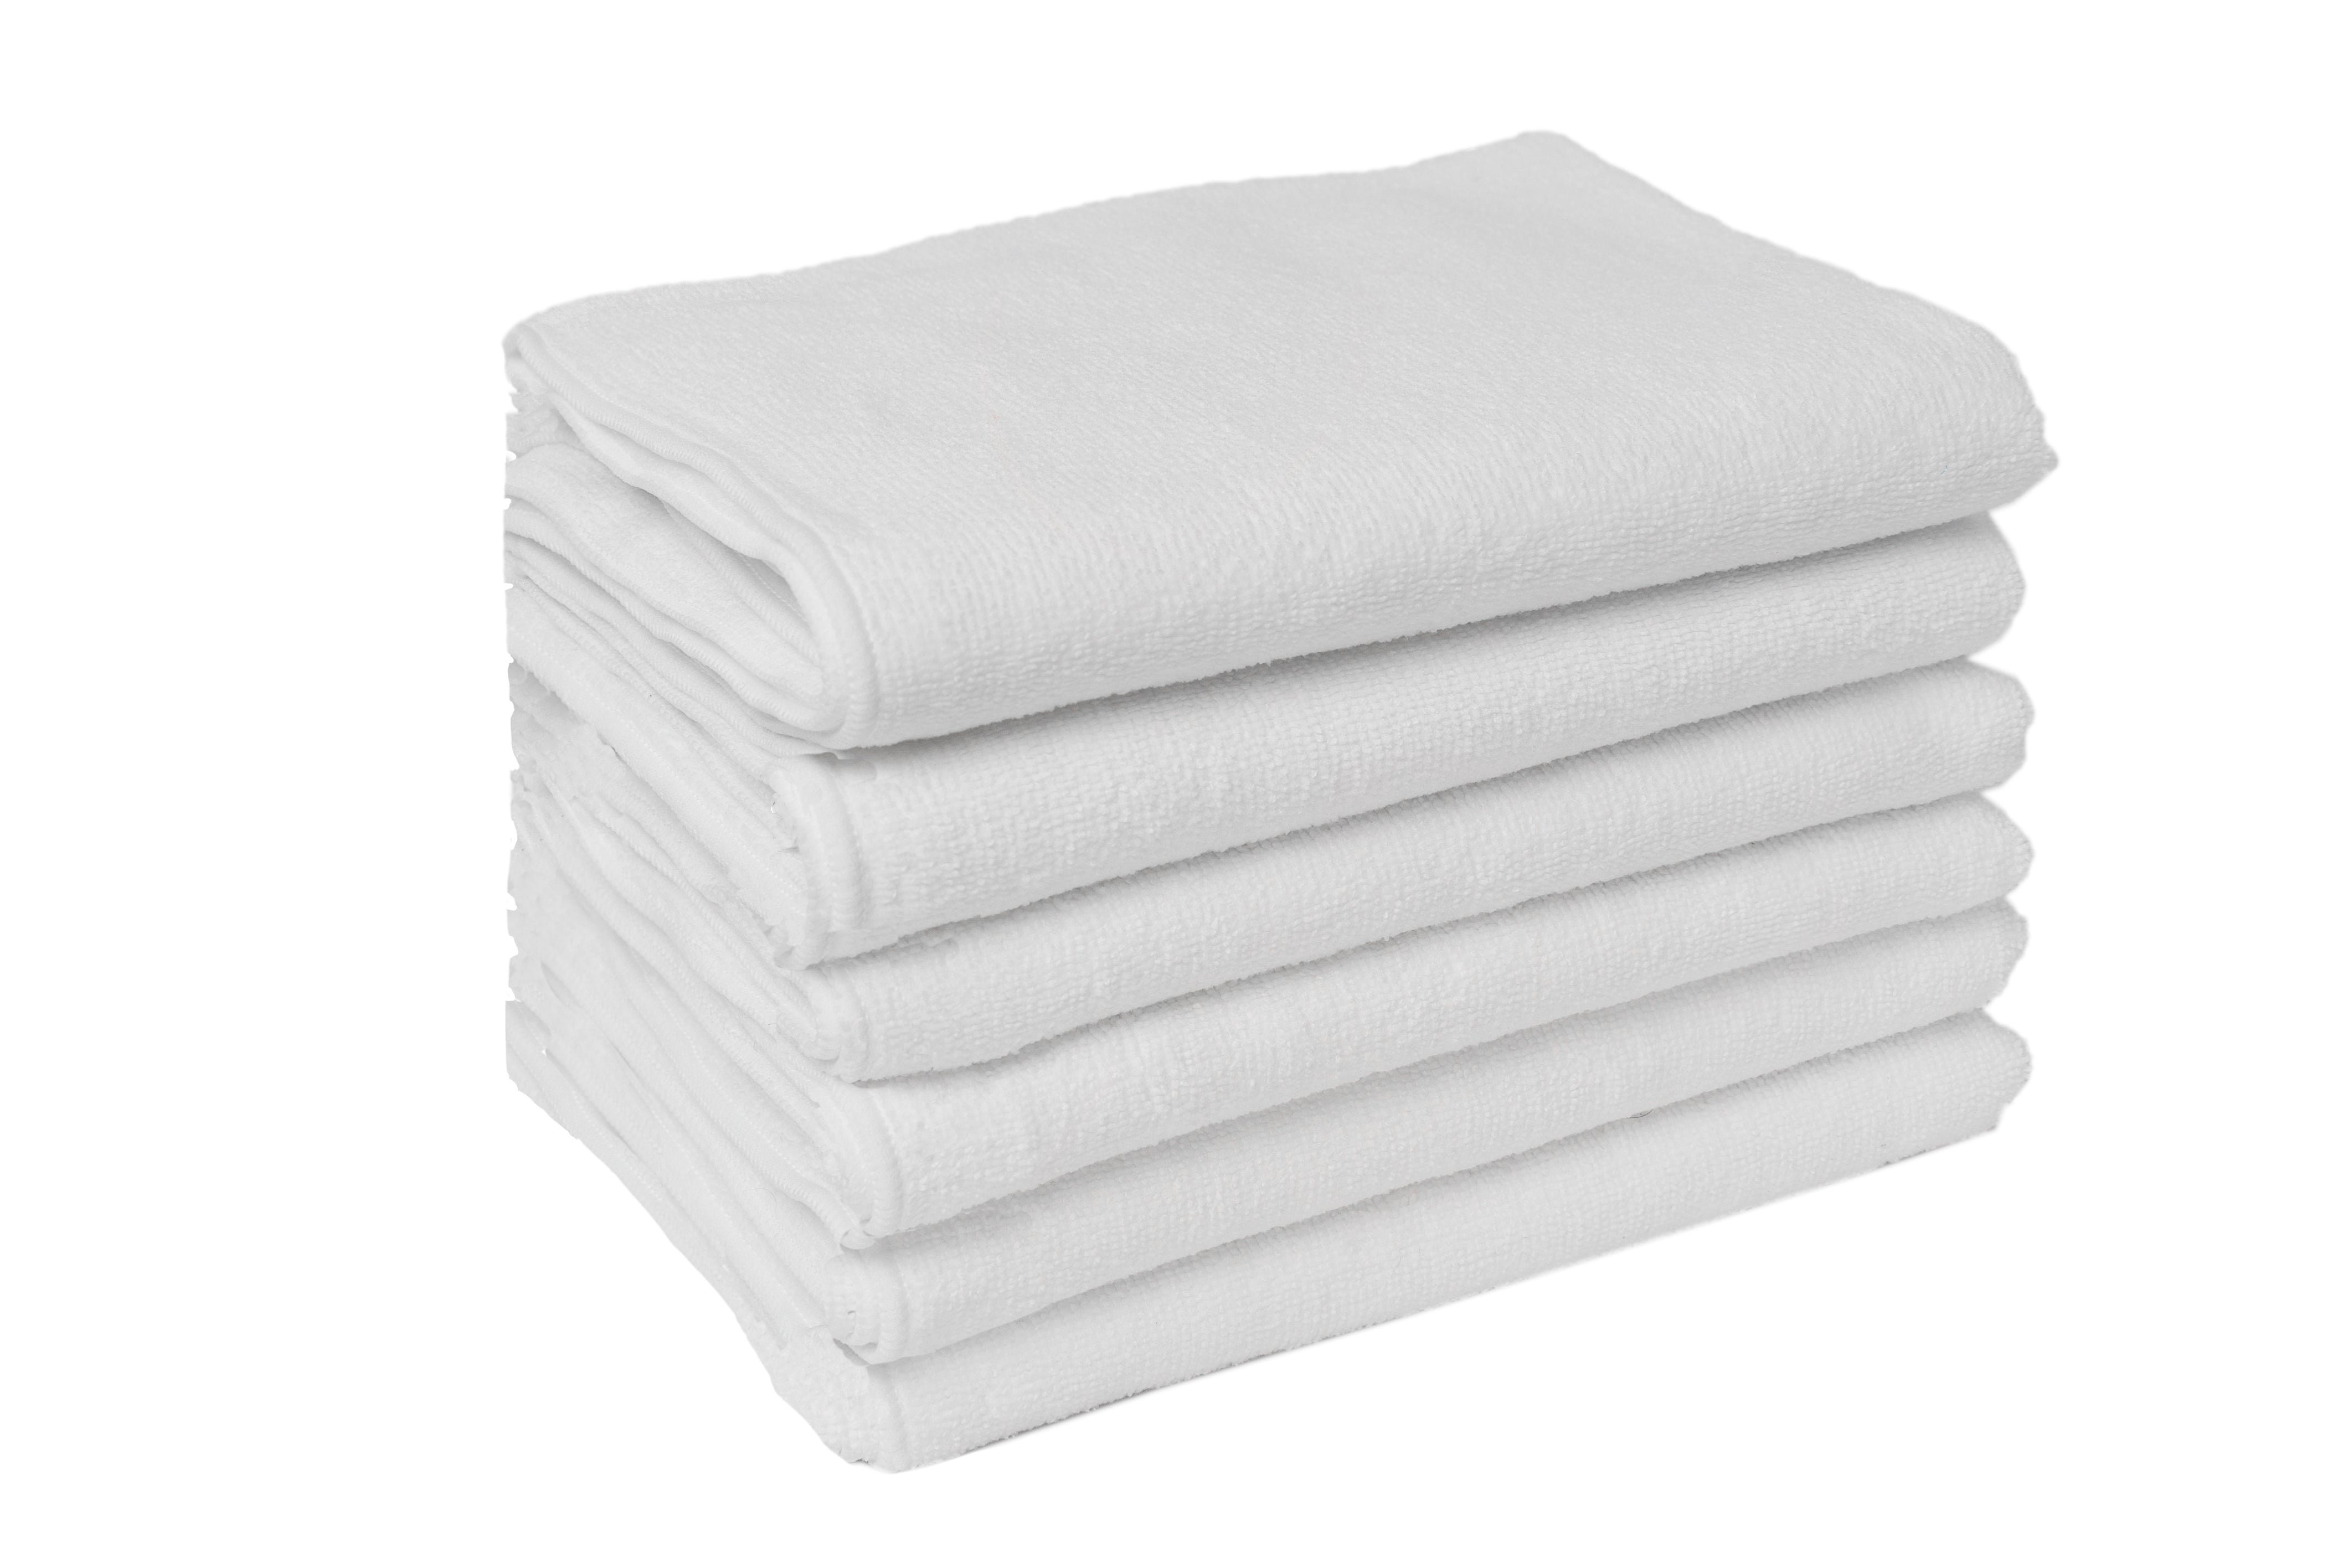 Partex micro4™ Microfiber Terry Black and White Towels